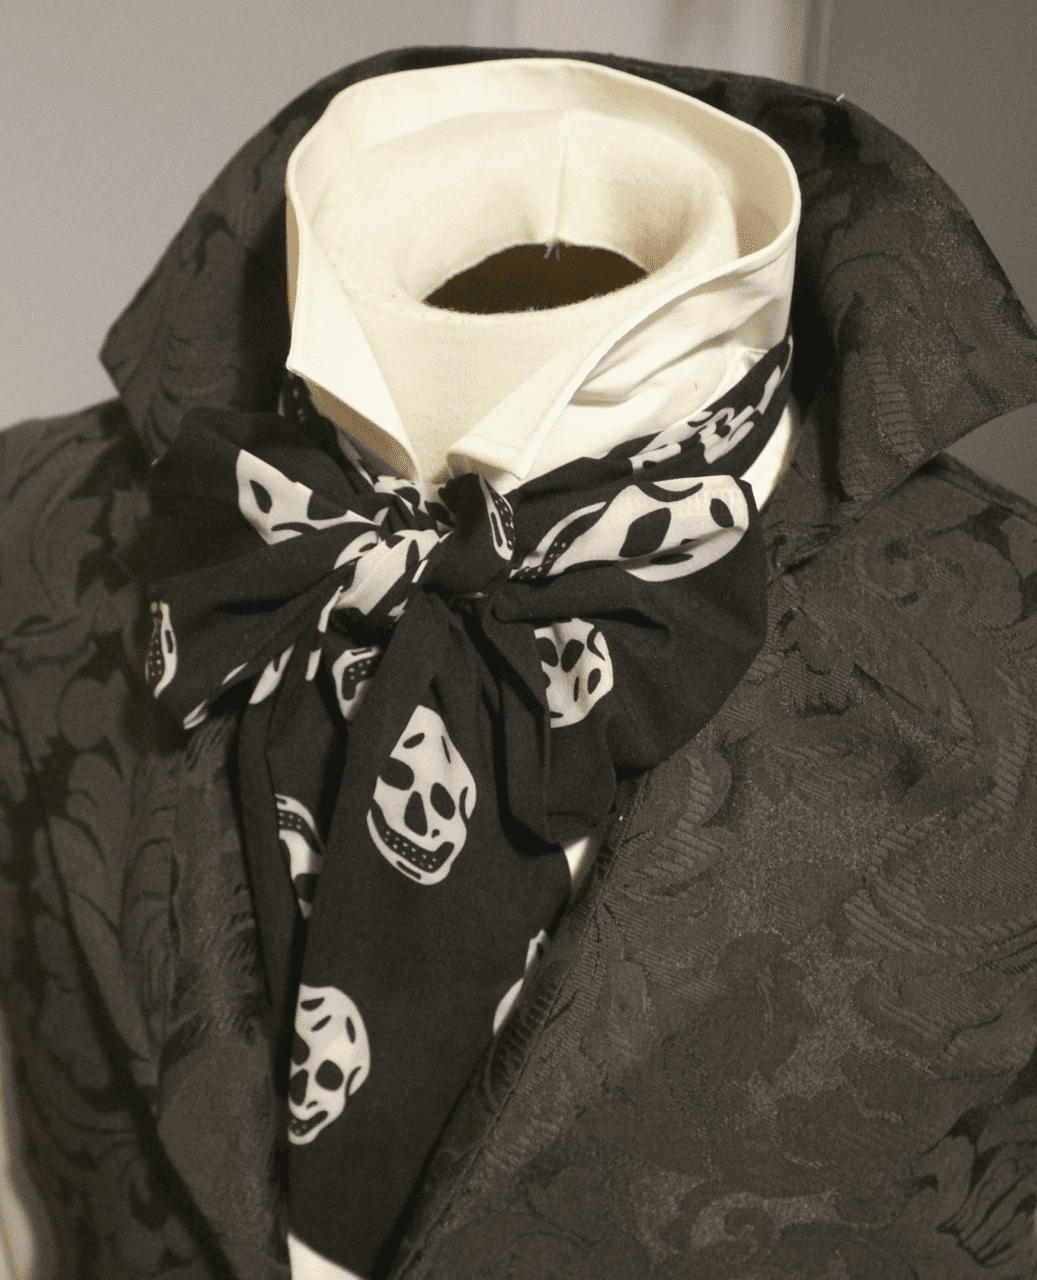 58 inches Long - REGENCY Victorian Style Ascot Tie Cravat Silk/Cotton � Black and white skull pattern - 6 inch width